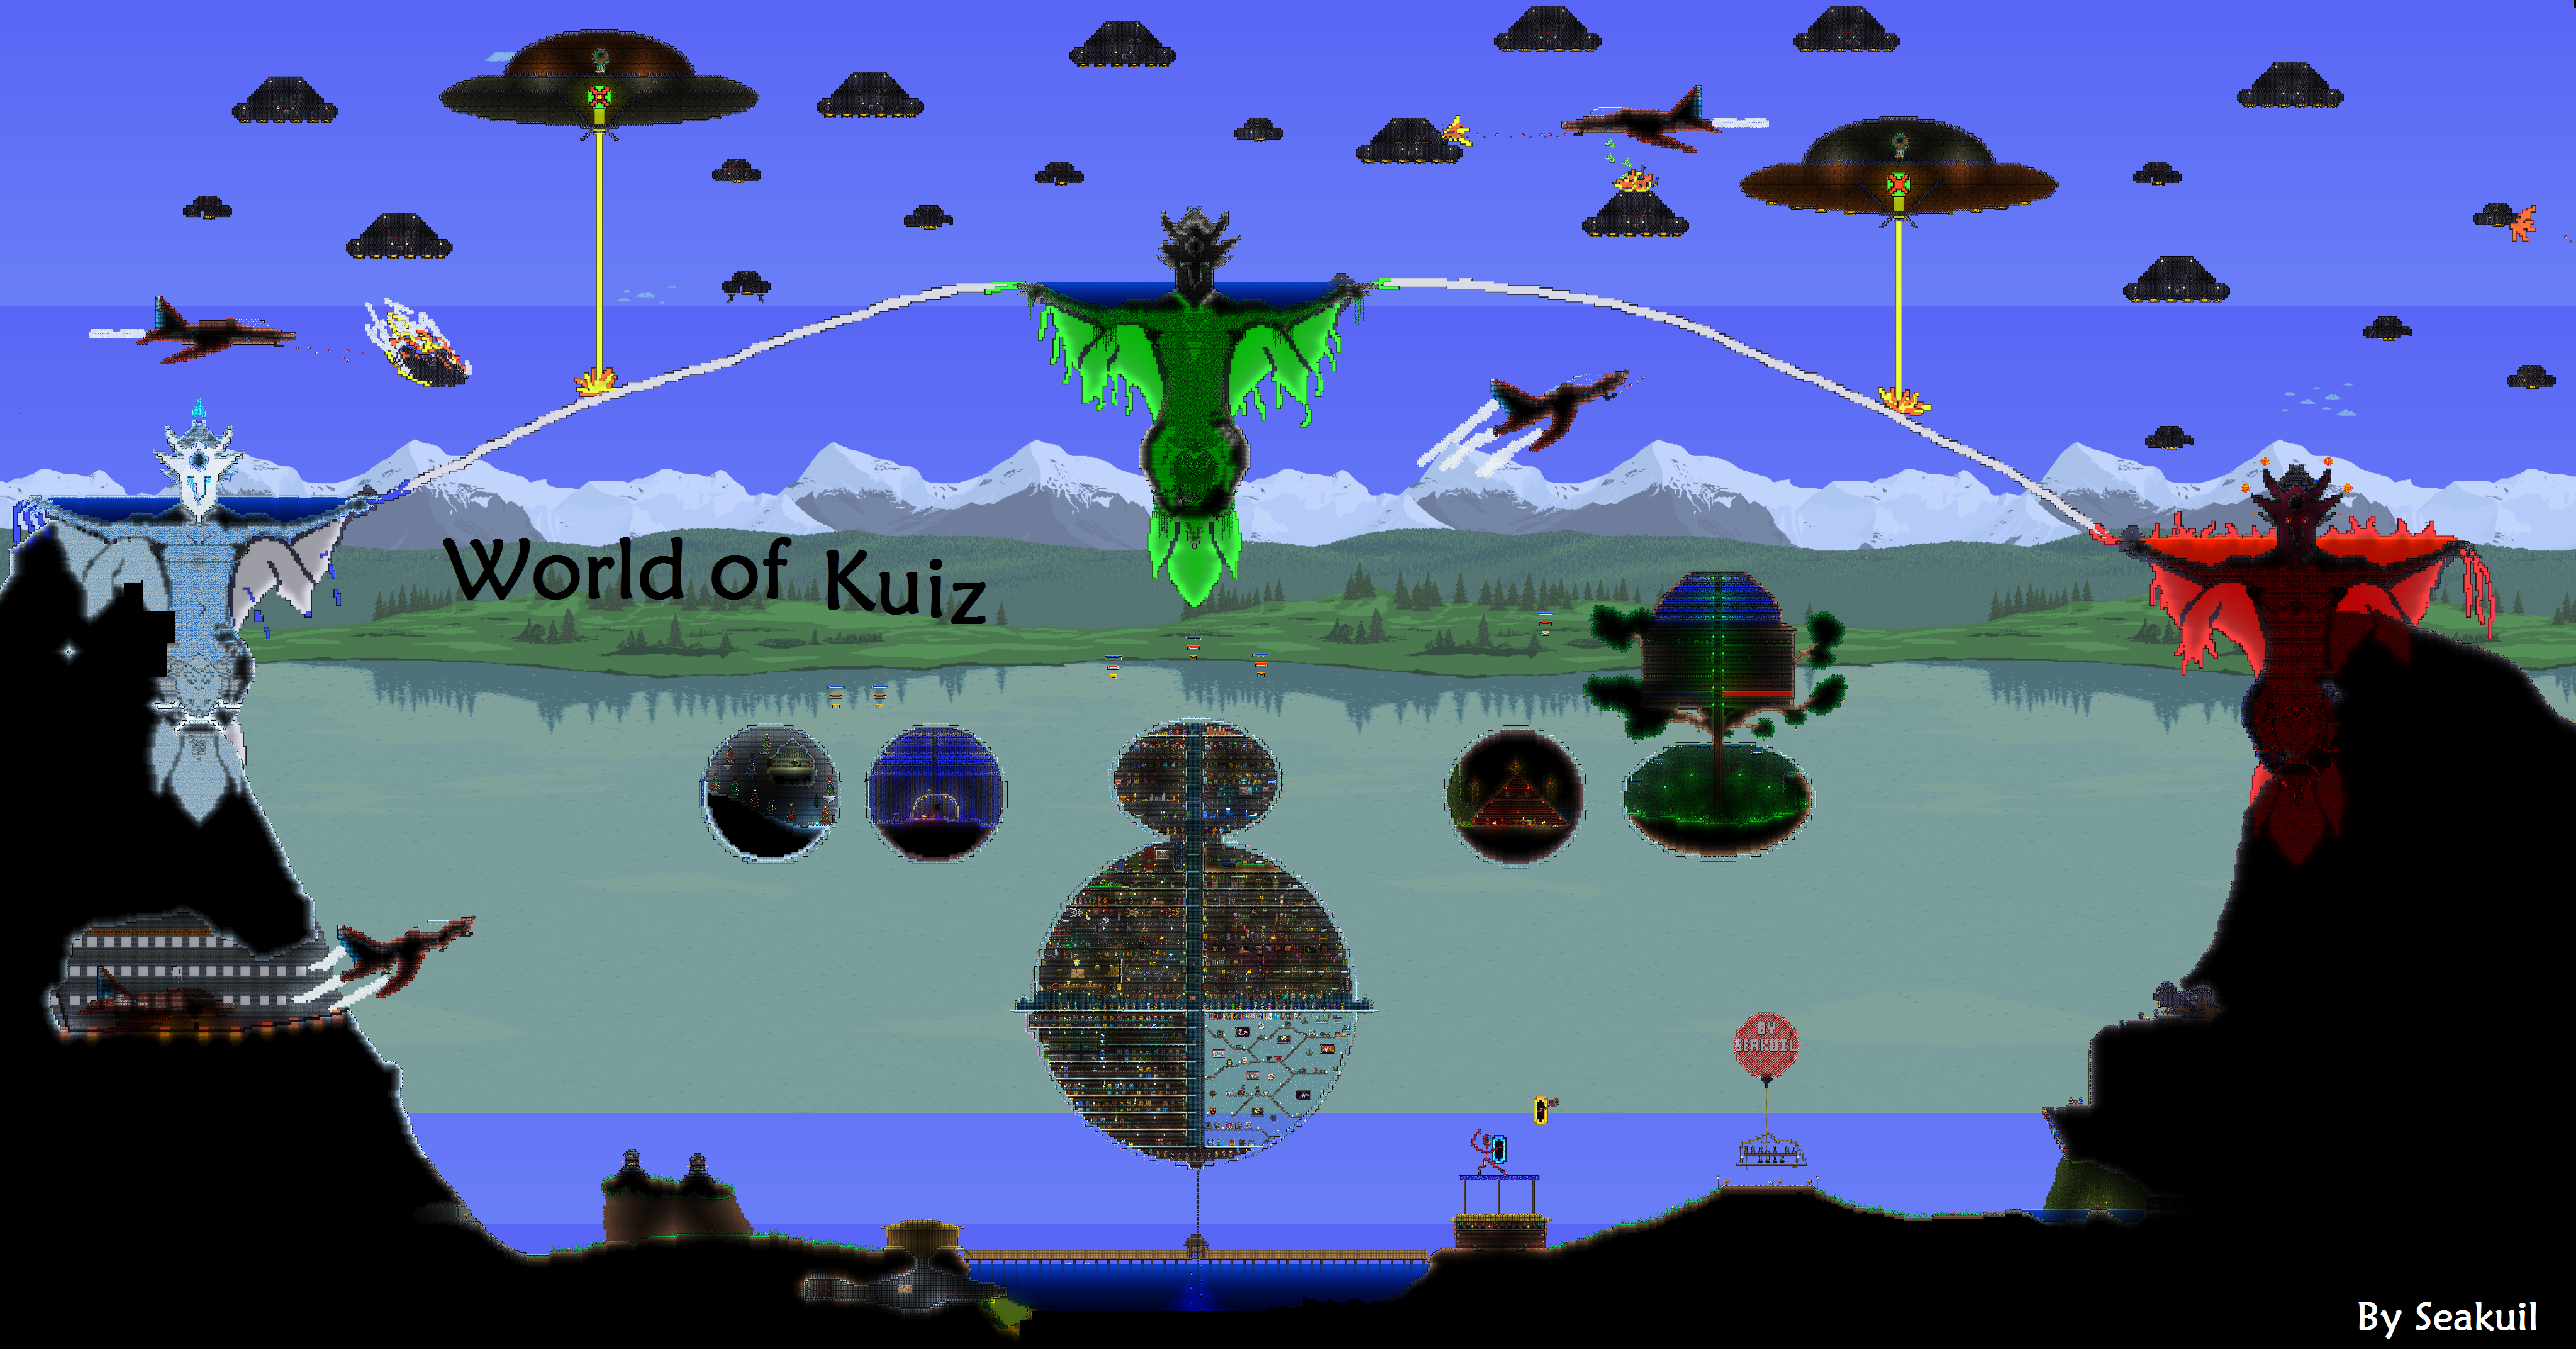 Overview world of kuiz maps projects terraria curseforge terraria curseforge gumiabroncs Image collections